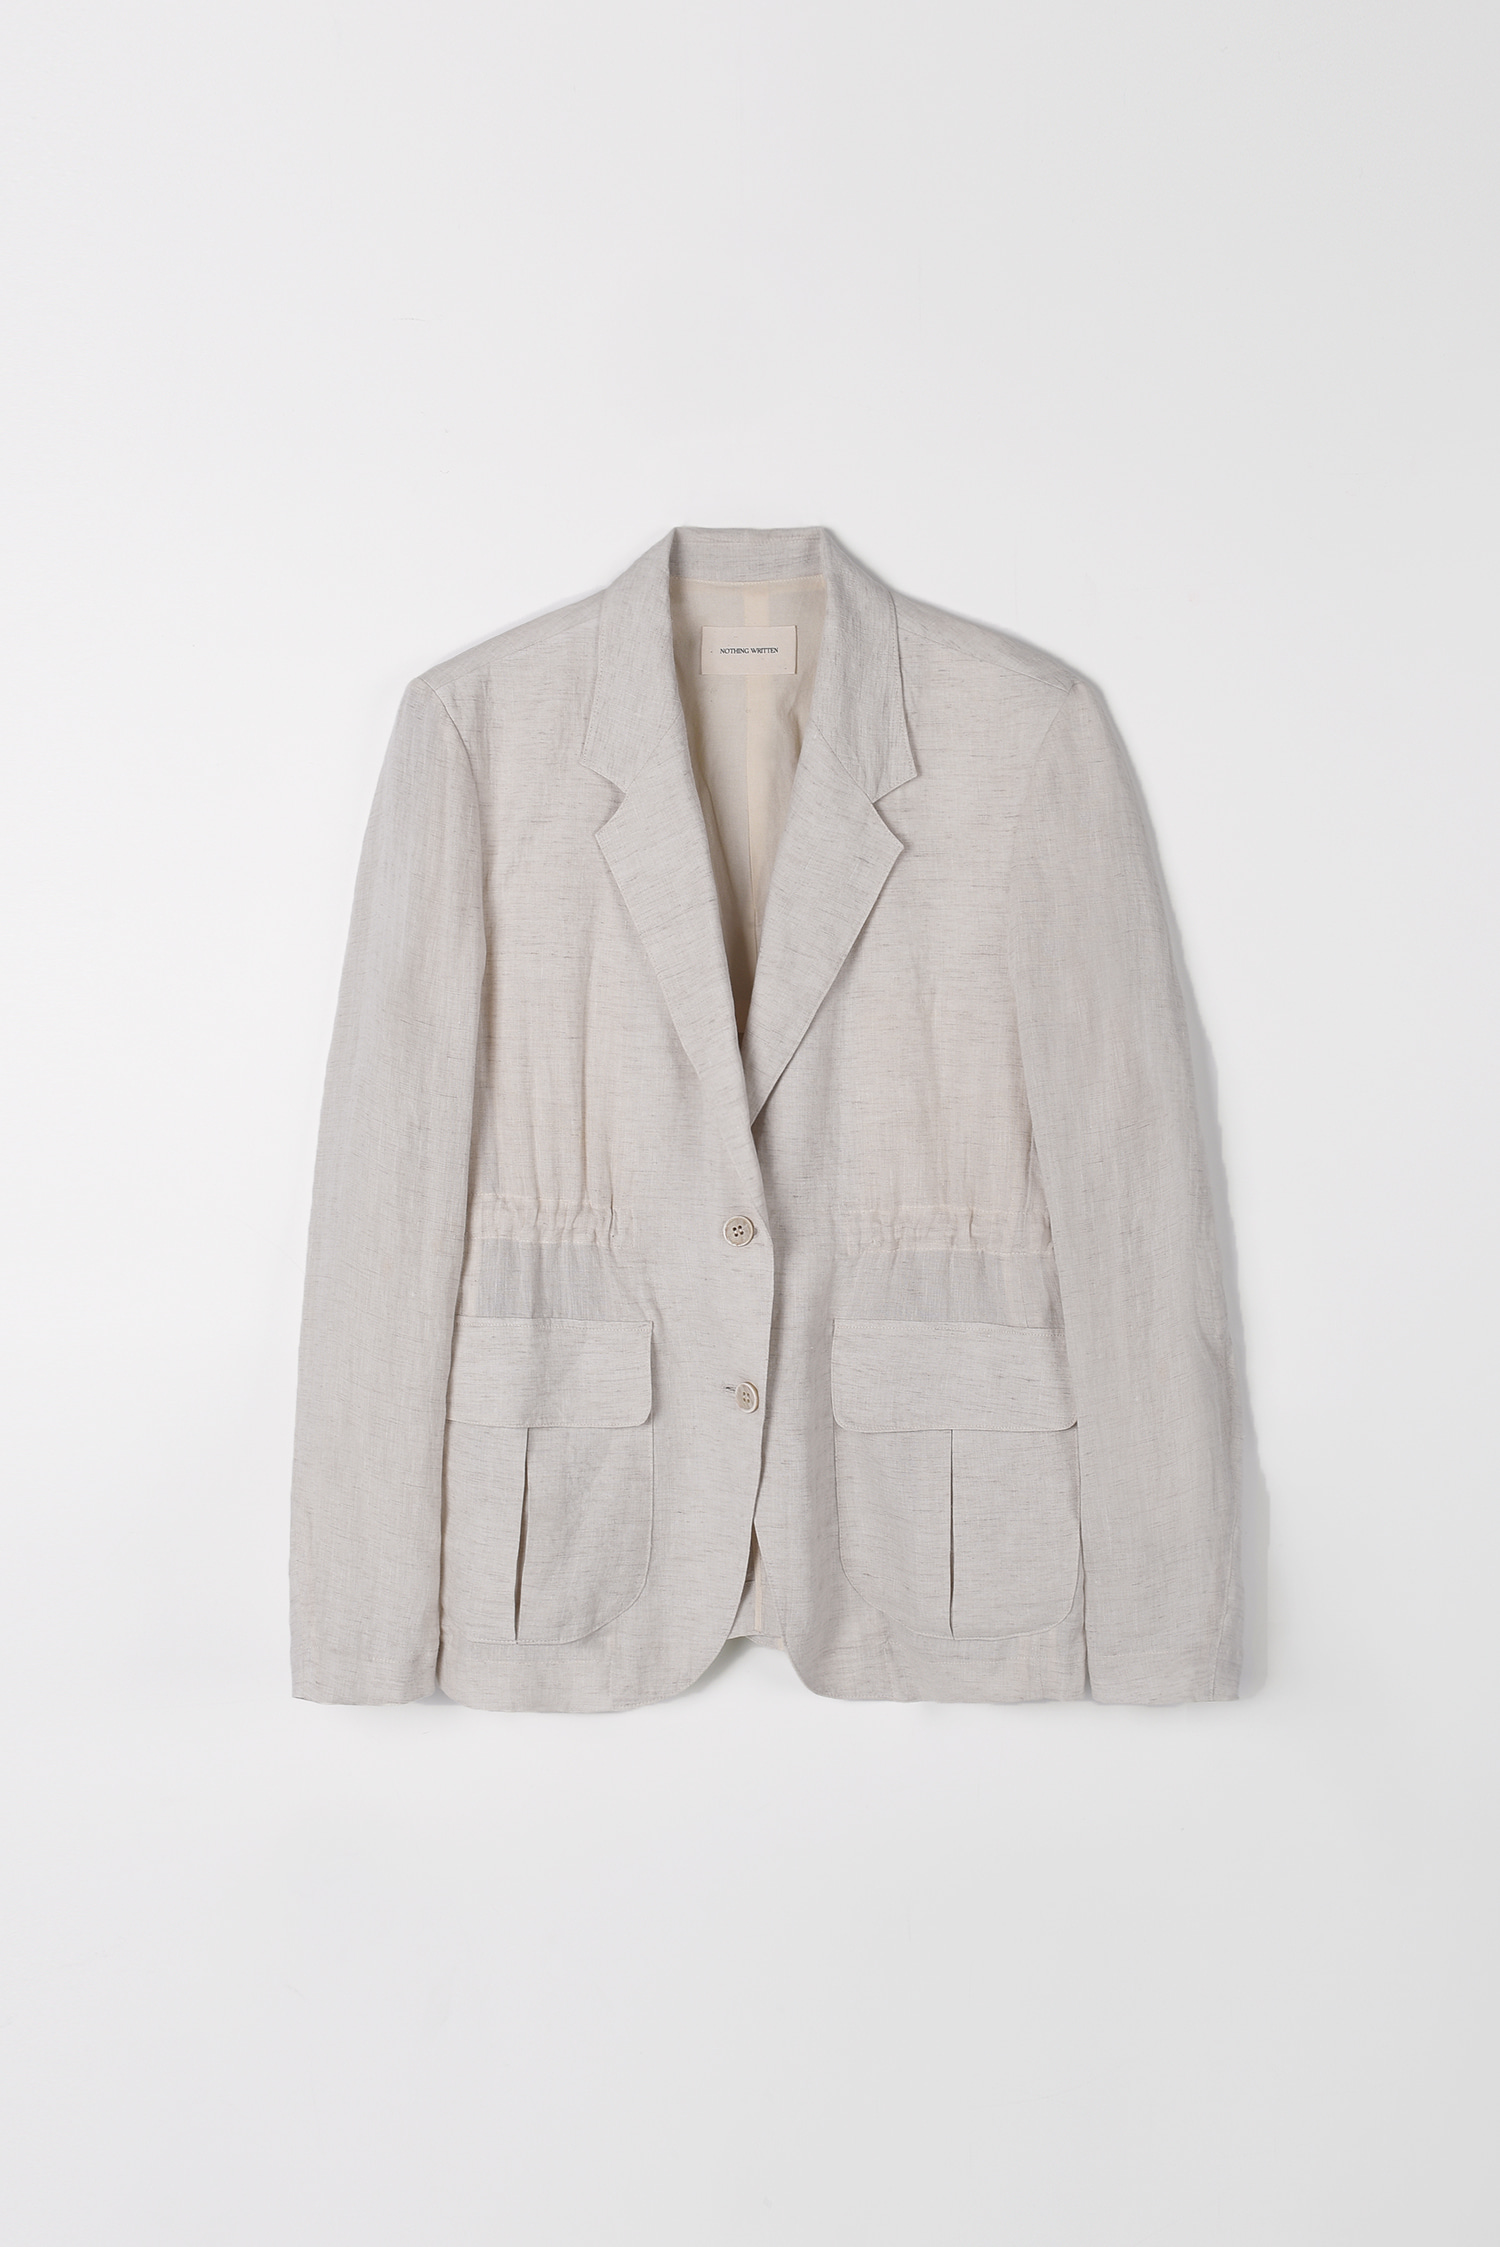 Safari linen jacket (ivory)